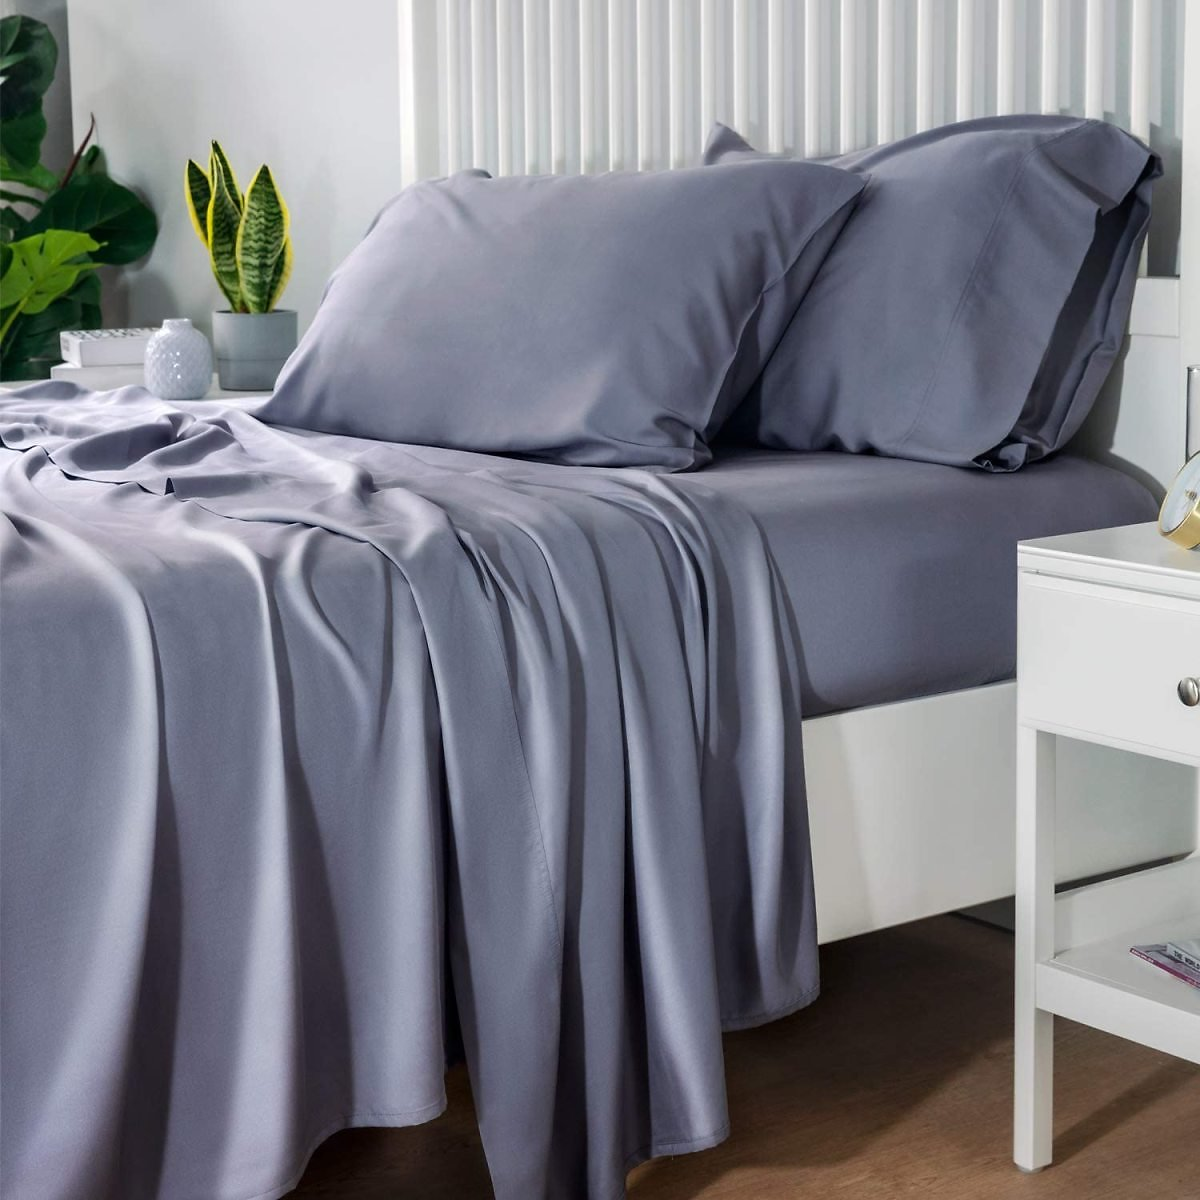 Pack of 4 - Cooling Bamboo Bed Sheet Set